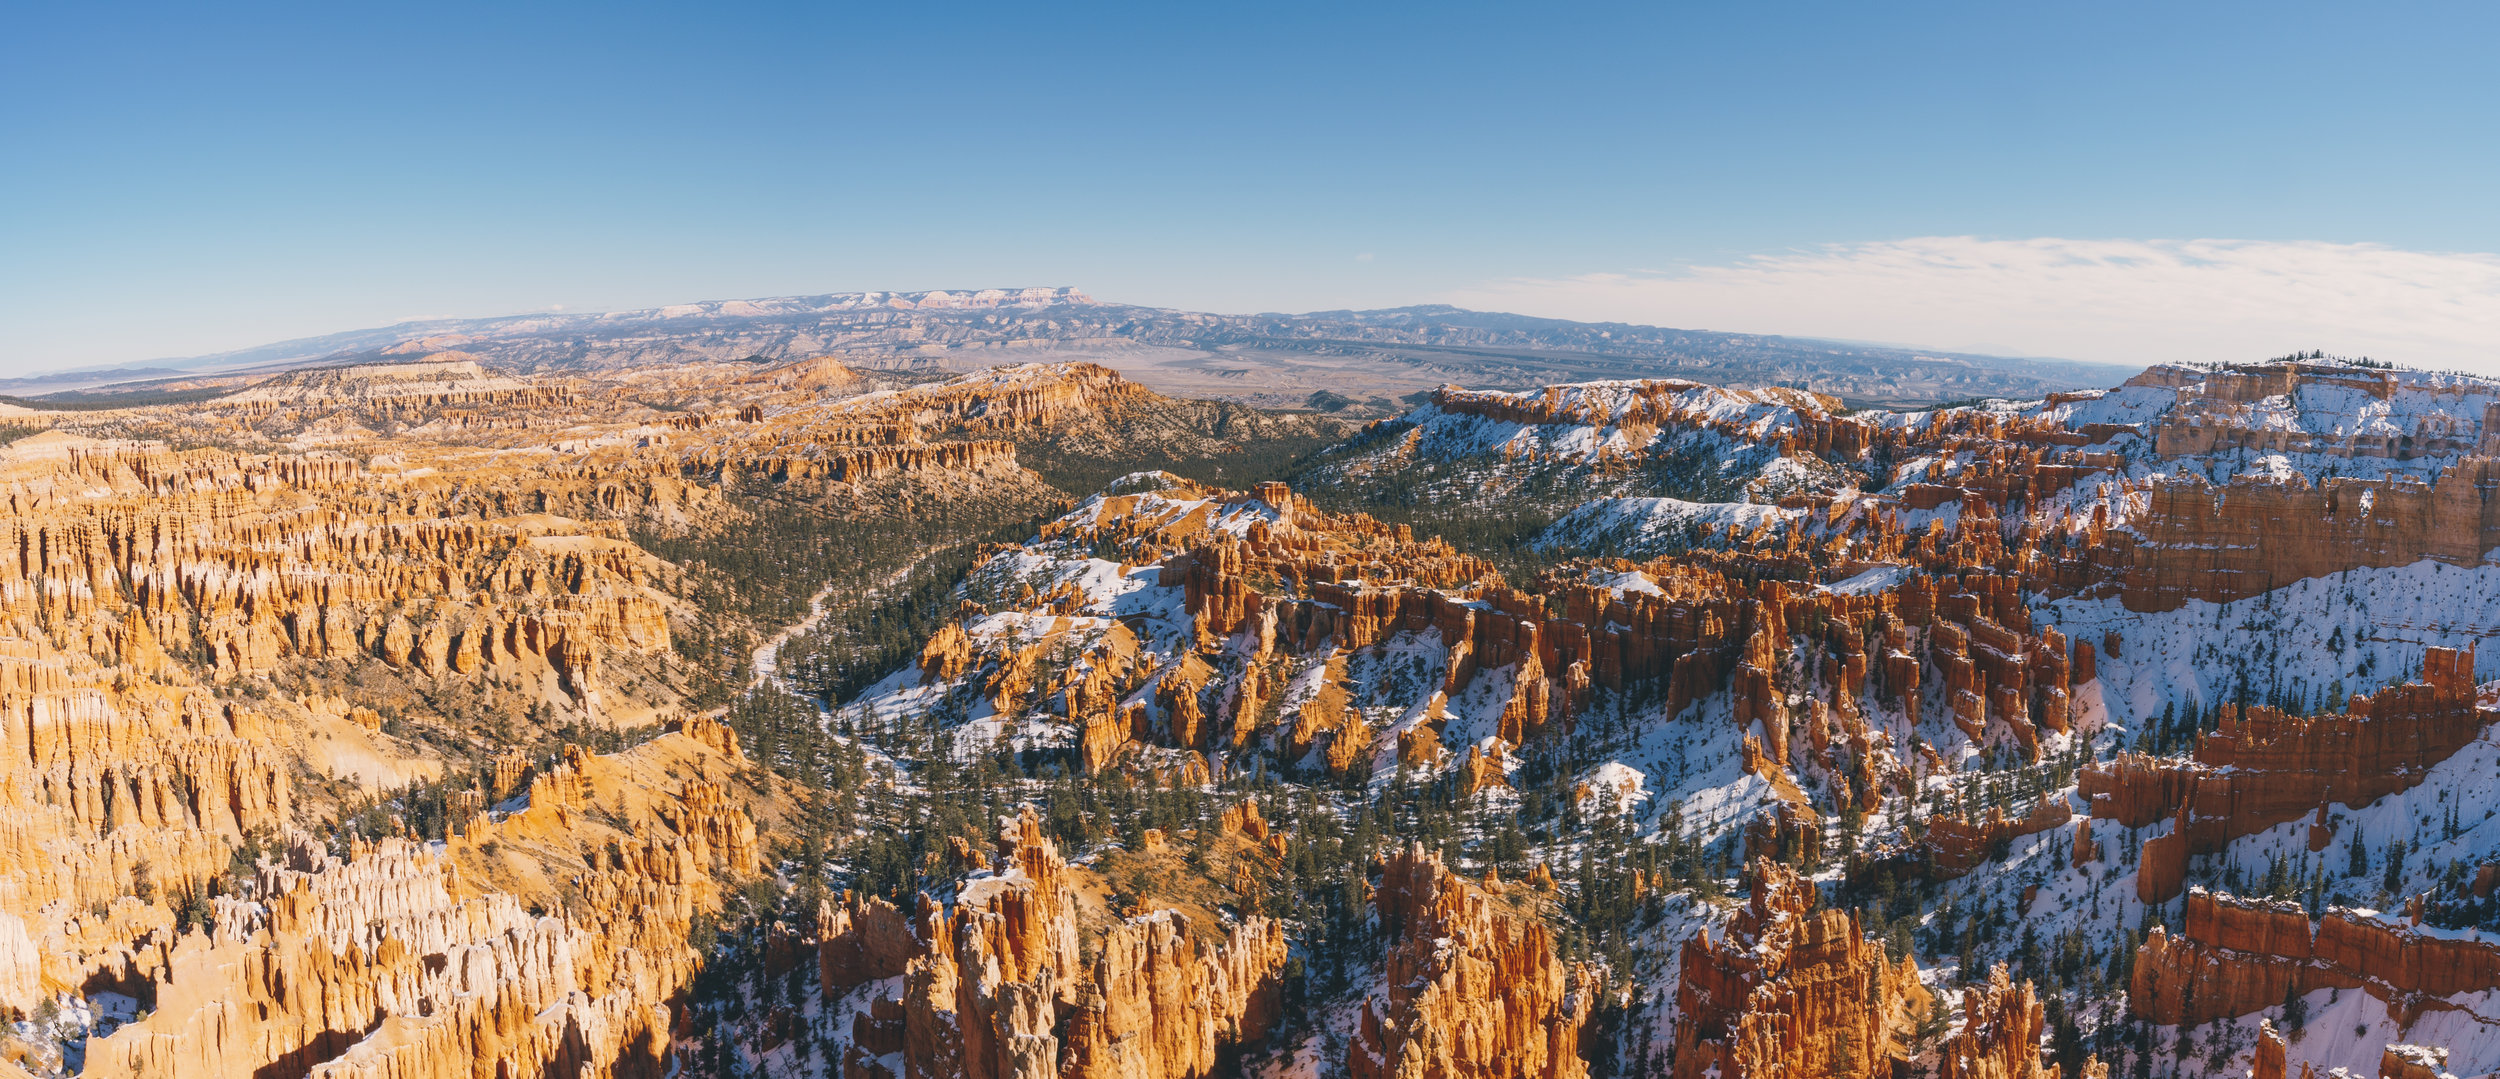 A panoramic view from the top of the  Inspiration Point